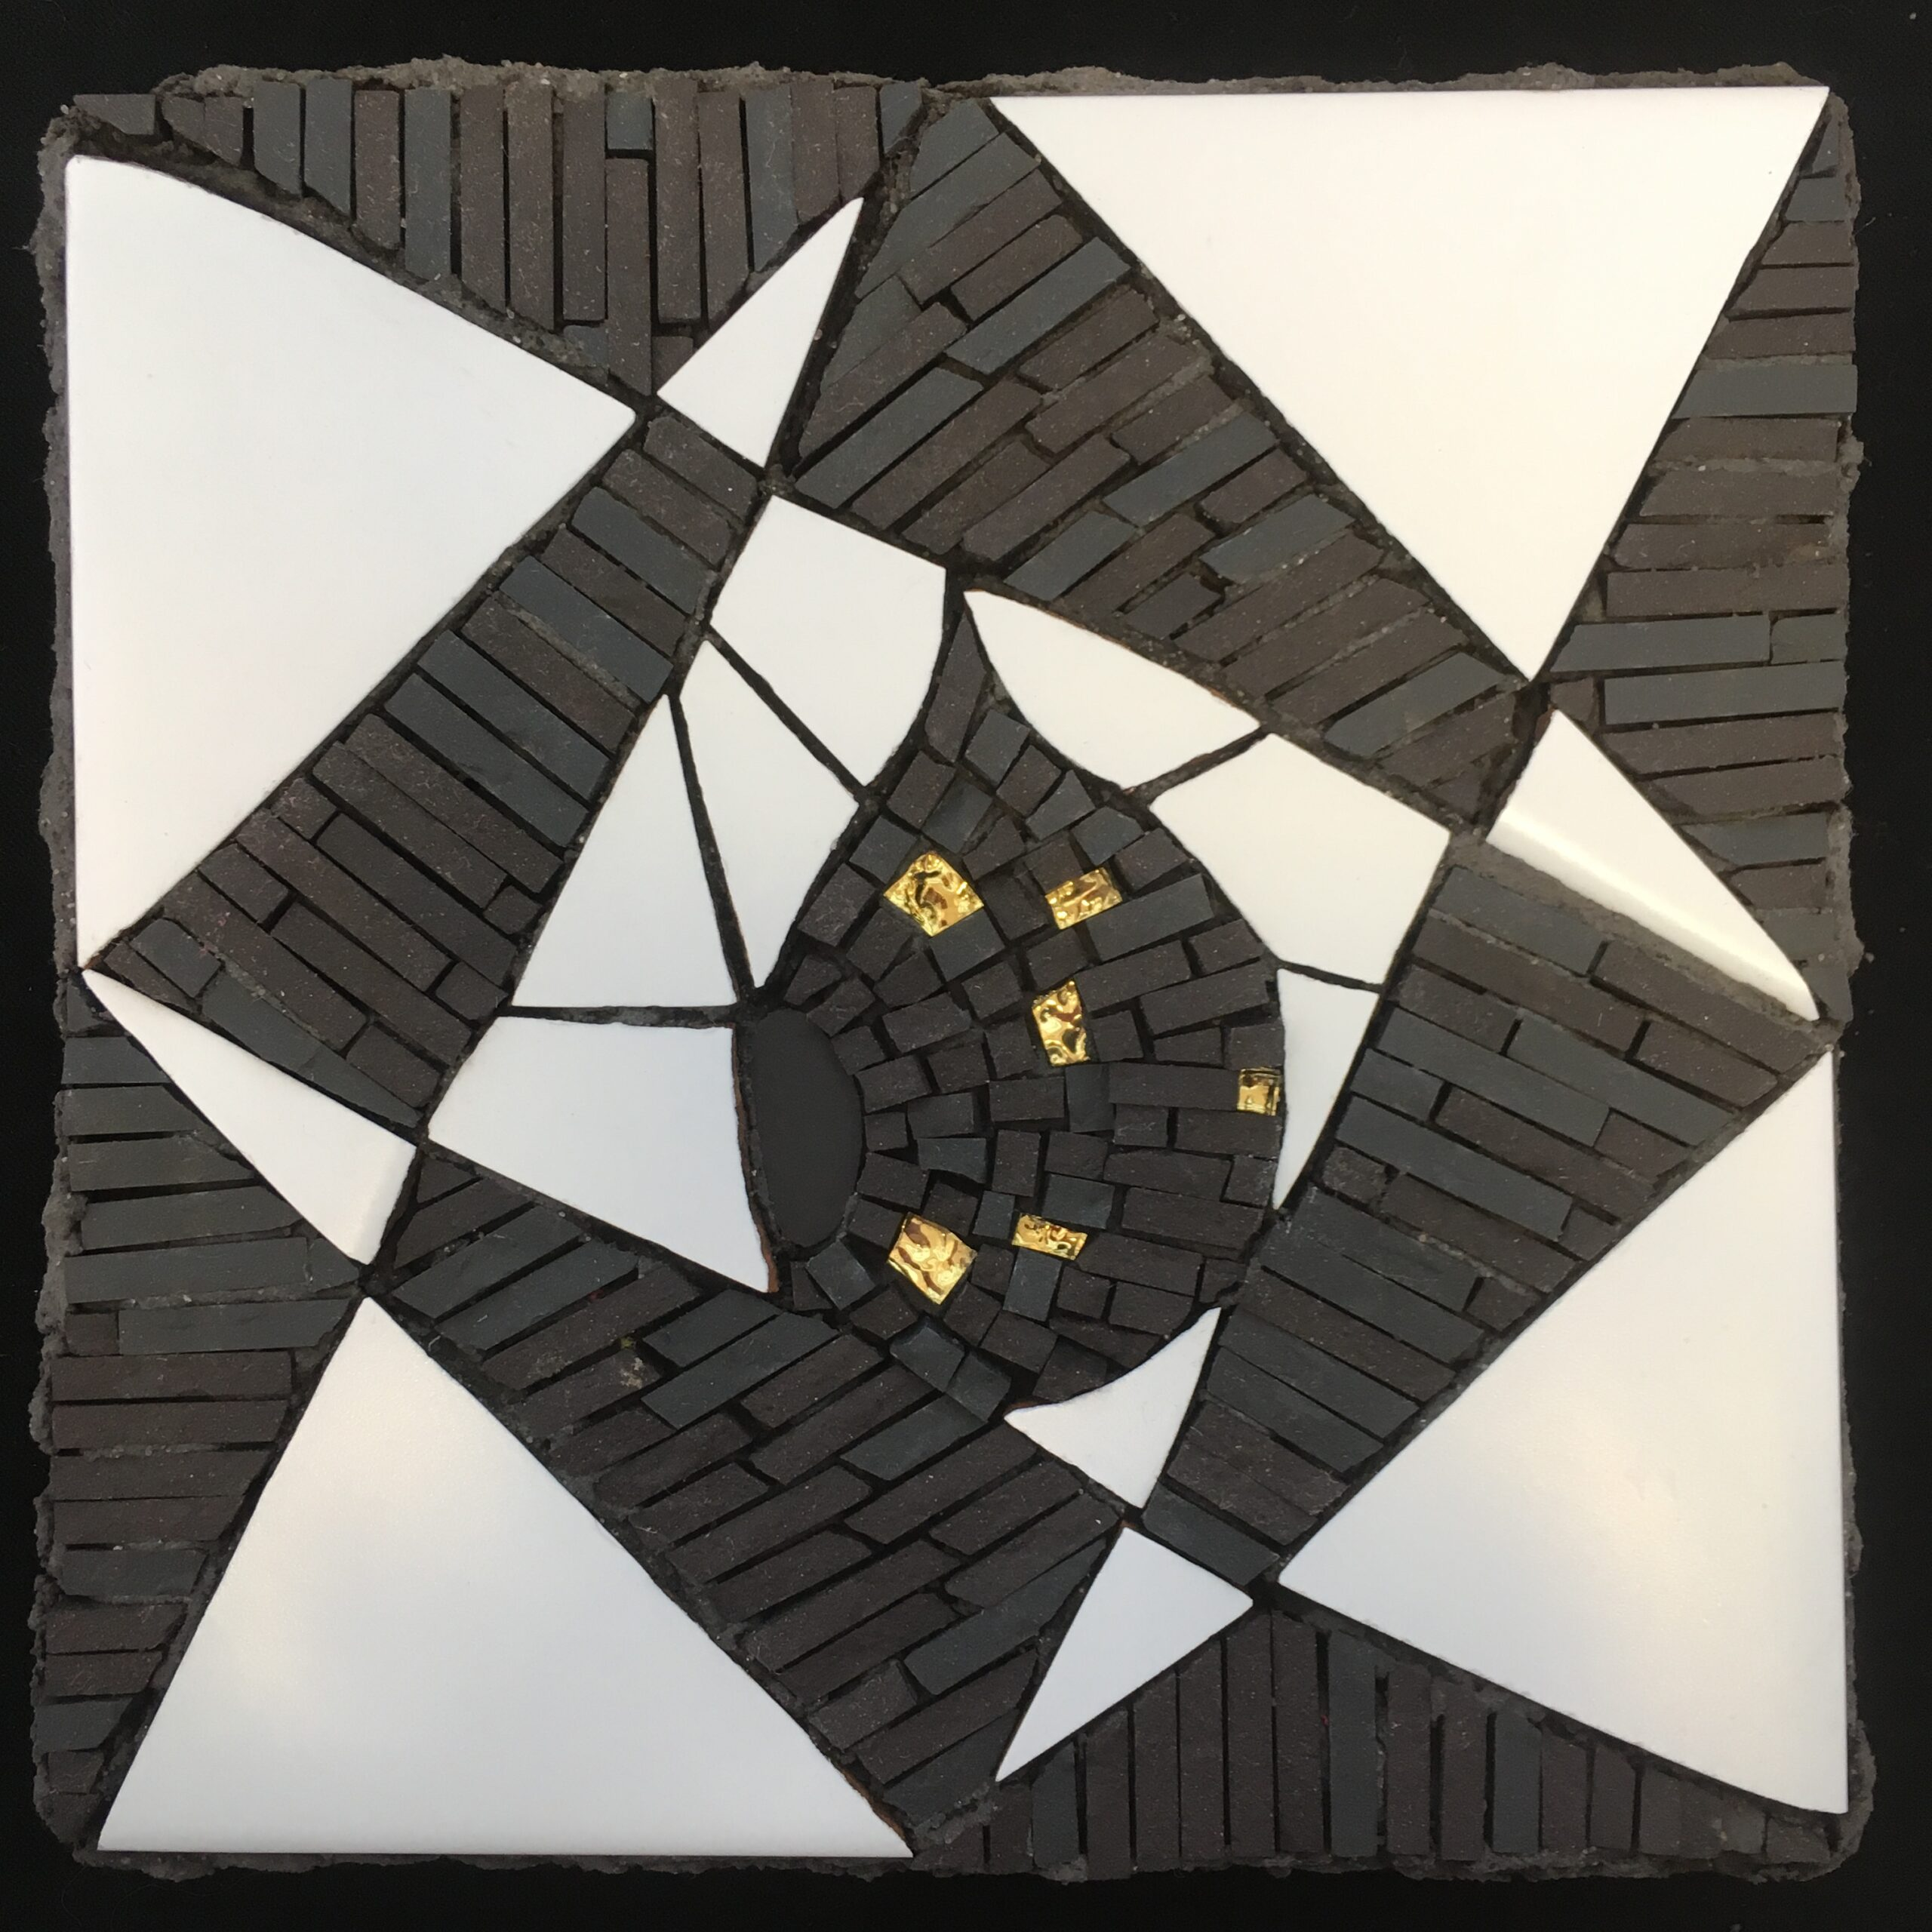 Image of a small black and white mosaic of geometric shapes featuring a central teardrop shape with gold glass pieces inserted.